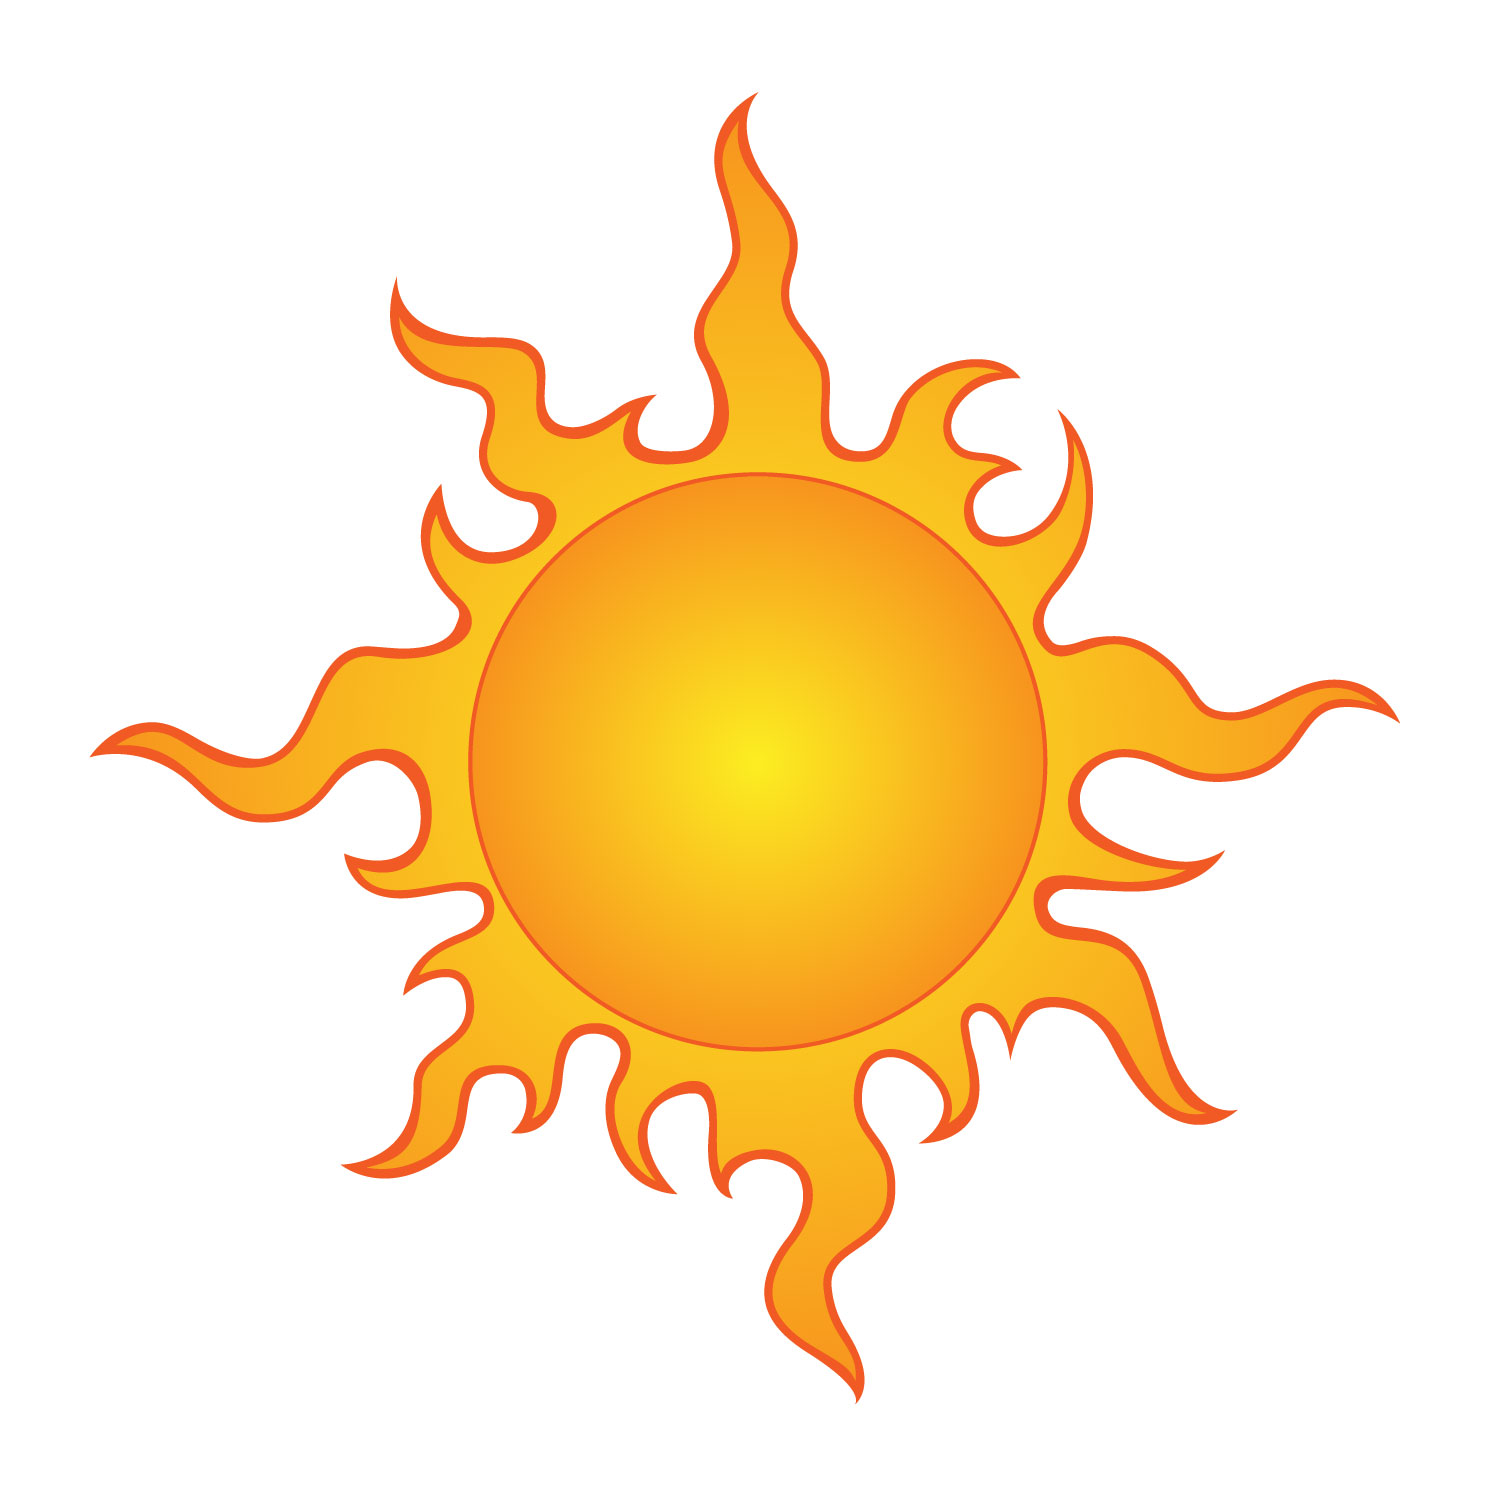 Free Images Of A Sun, Download Free Clip Art, Free Clip Art